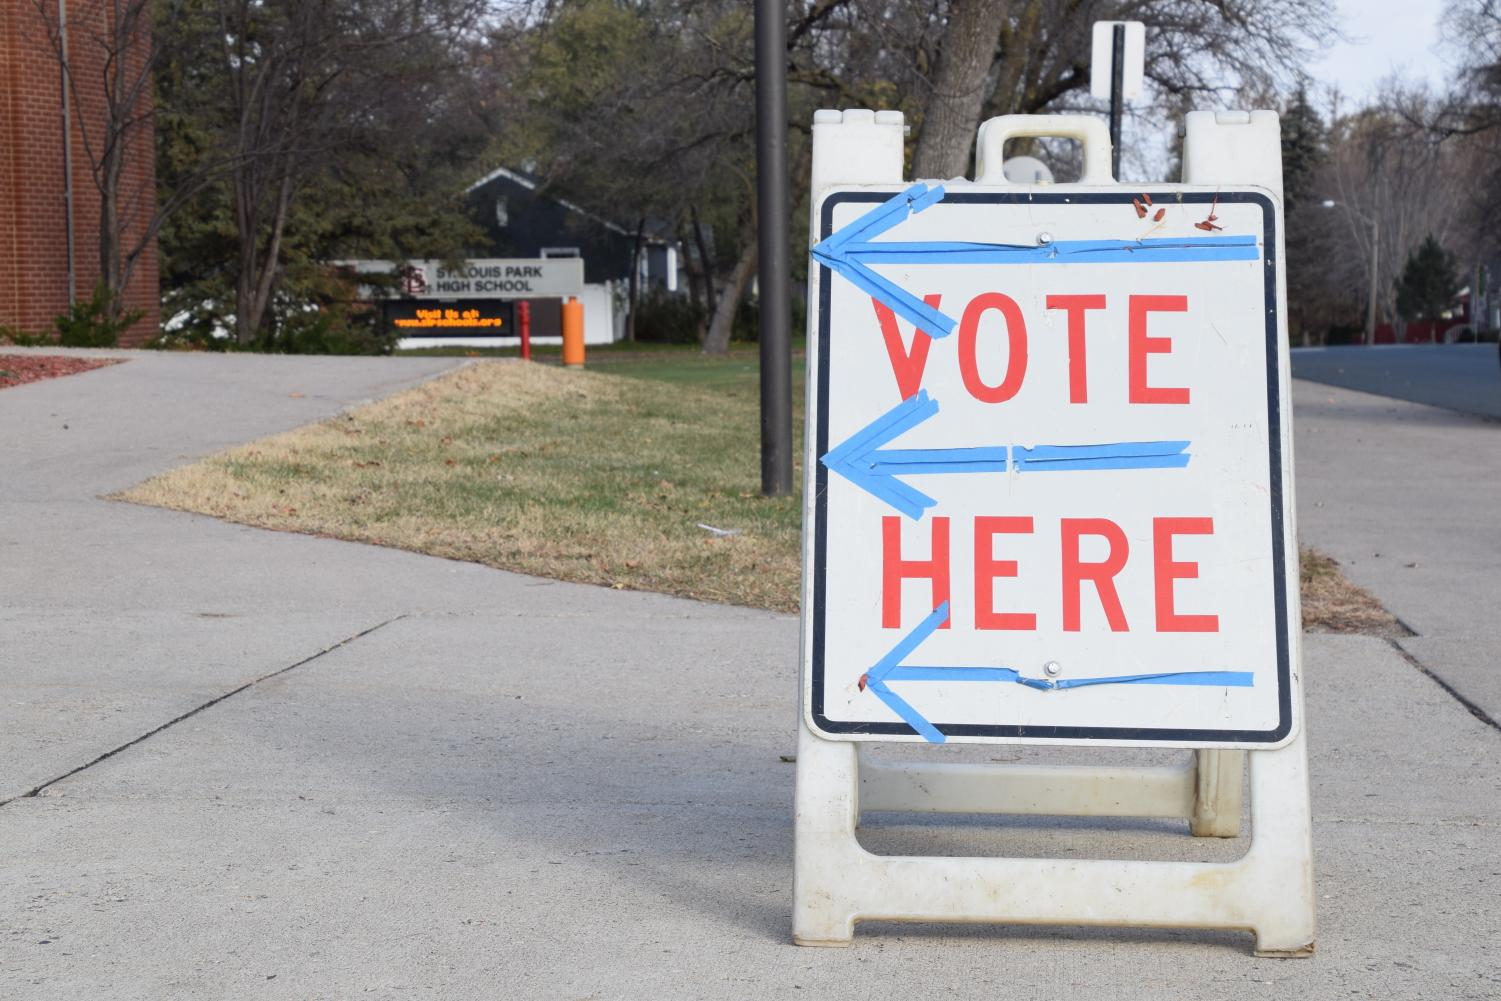 Park residents voted at various locations around Park, including the High School on Nov. 7. Tuesday's voting will elect the new city council and school board members as well as decide the status of the referendum.